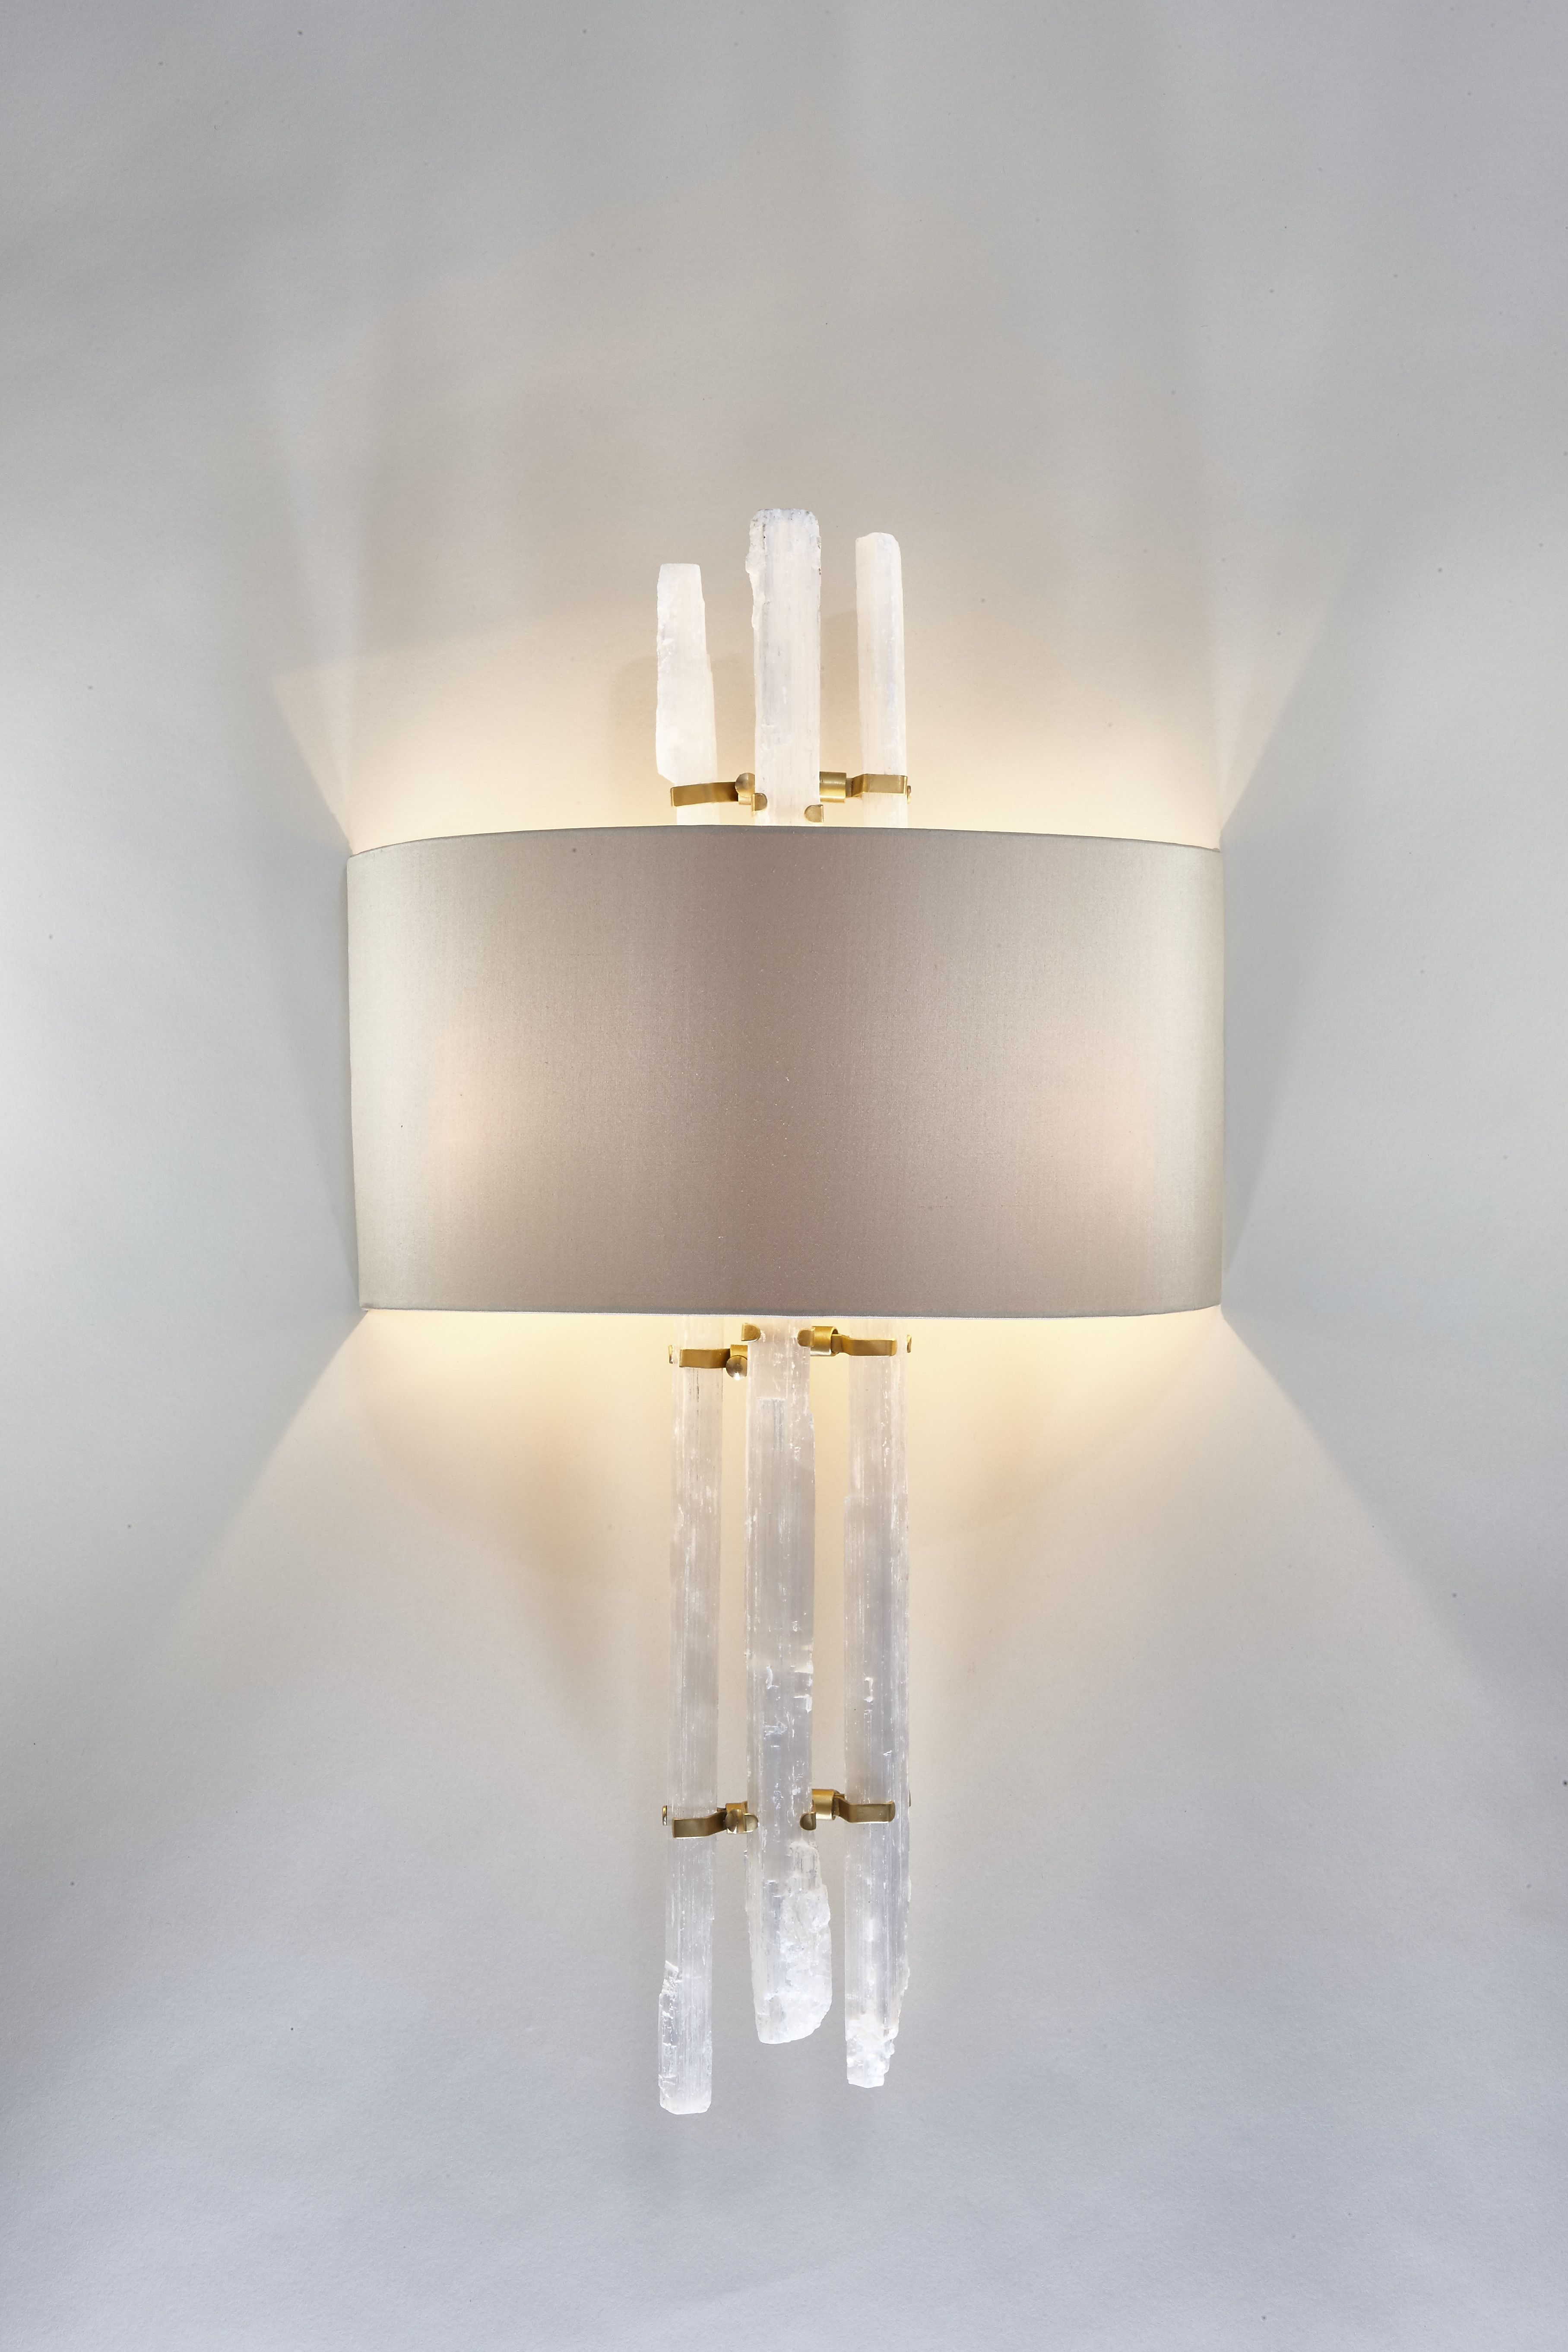 Rock crystal wall light made for cocovara interiors by phillips rock crystal wall light made for cocovara interiors by phillips wood amipublicfo Choice Image